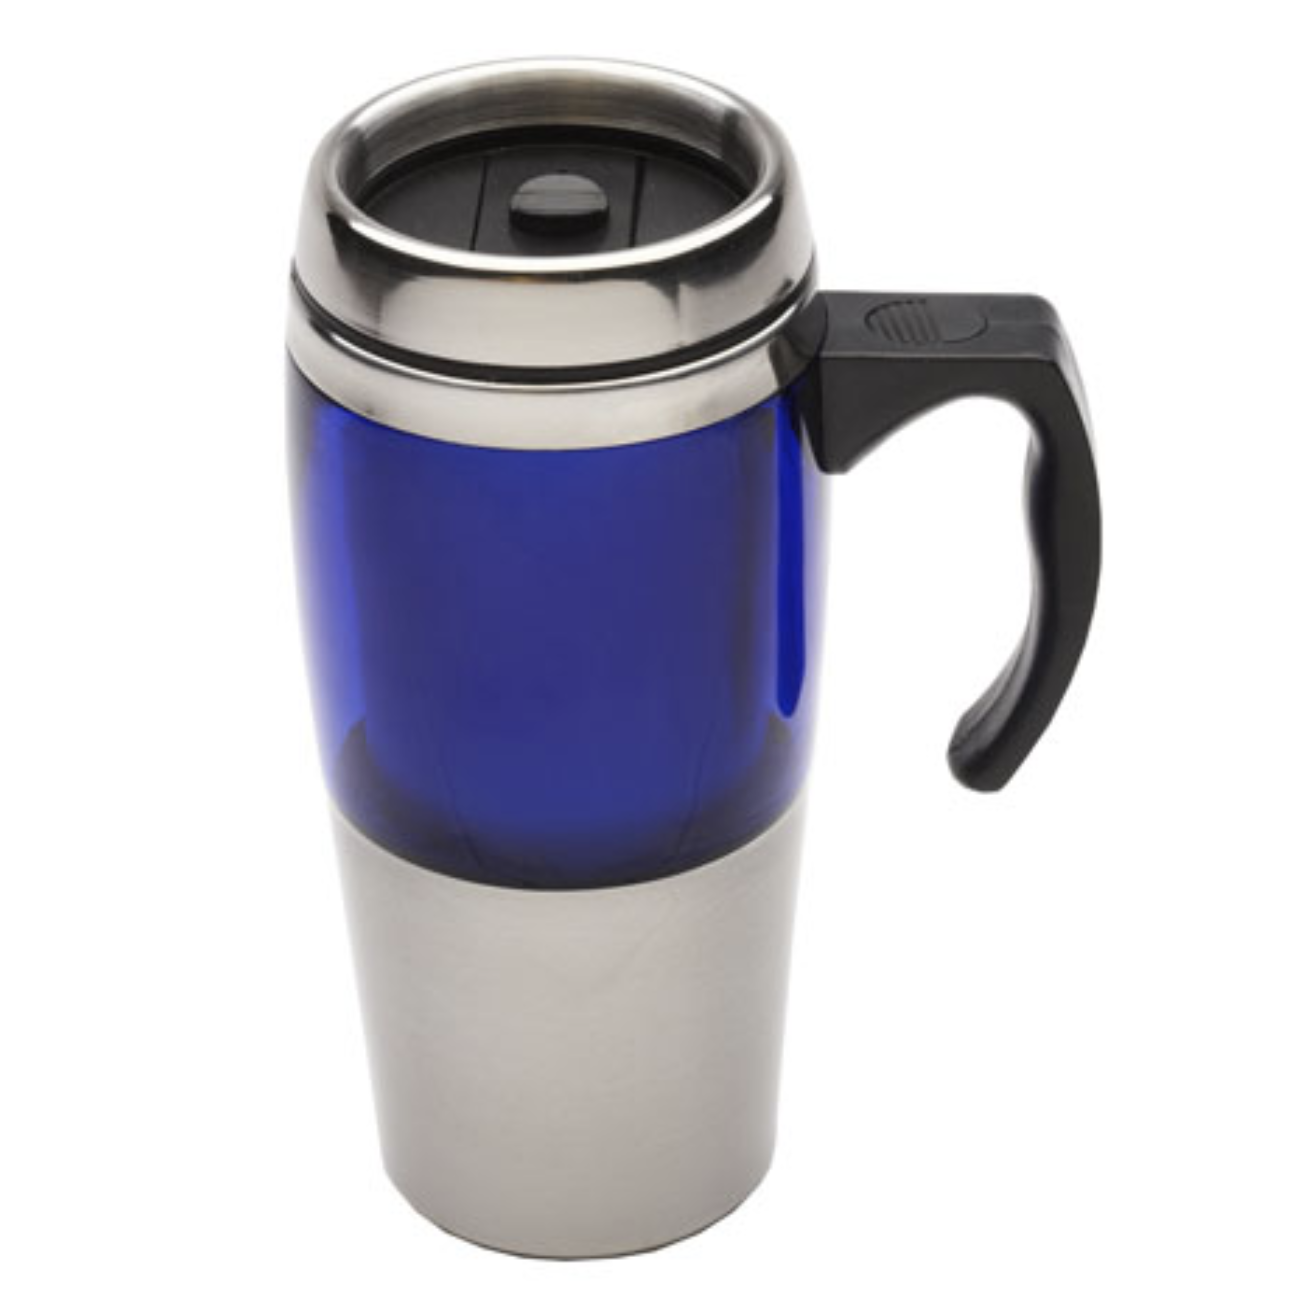 Velo Mug Travel Cup Stainless Steel Insulated Coffee Thermal Bottle - Blue